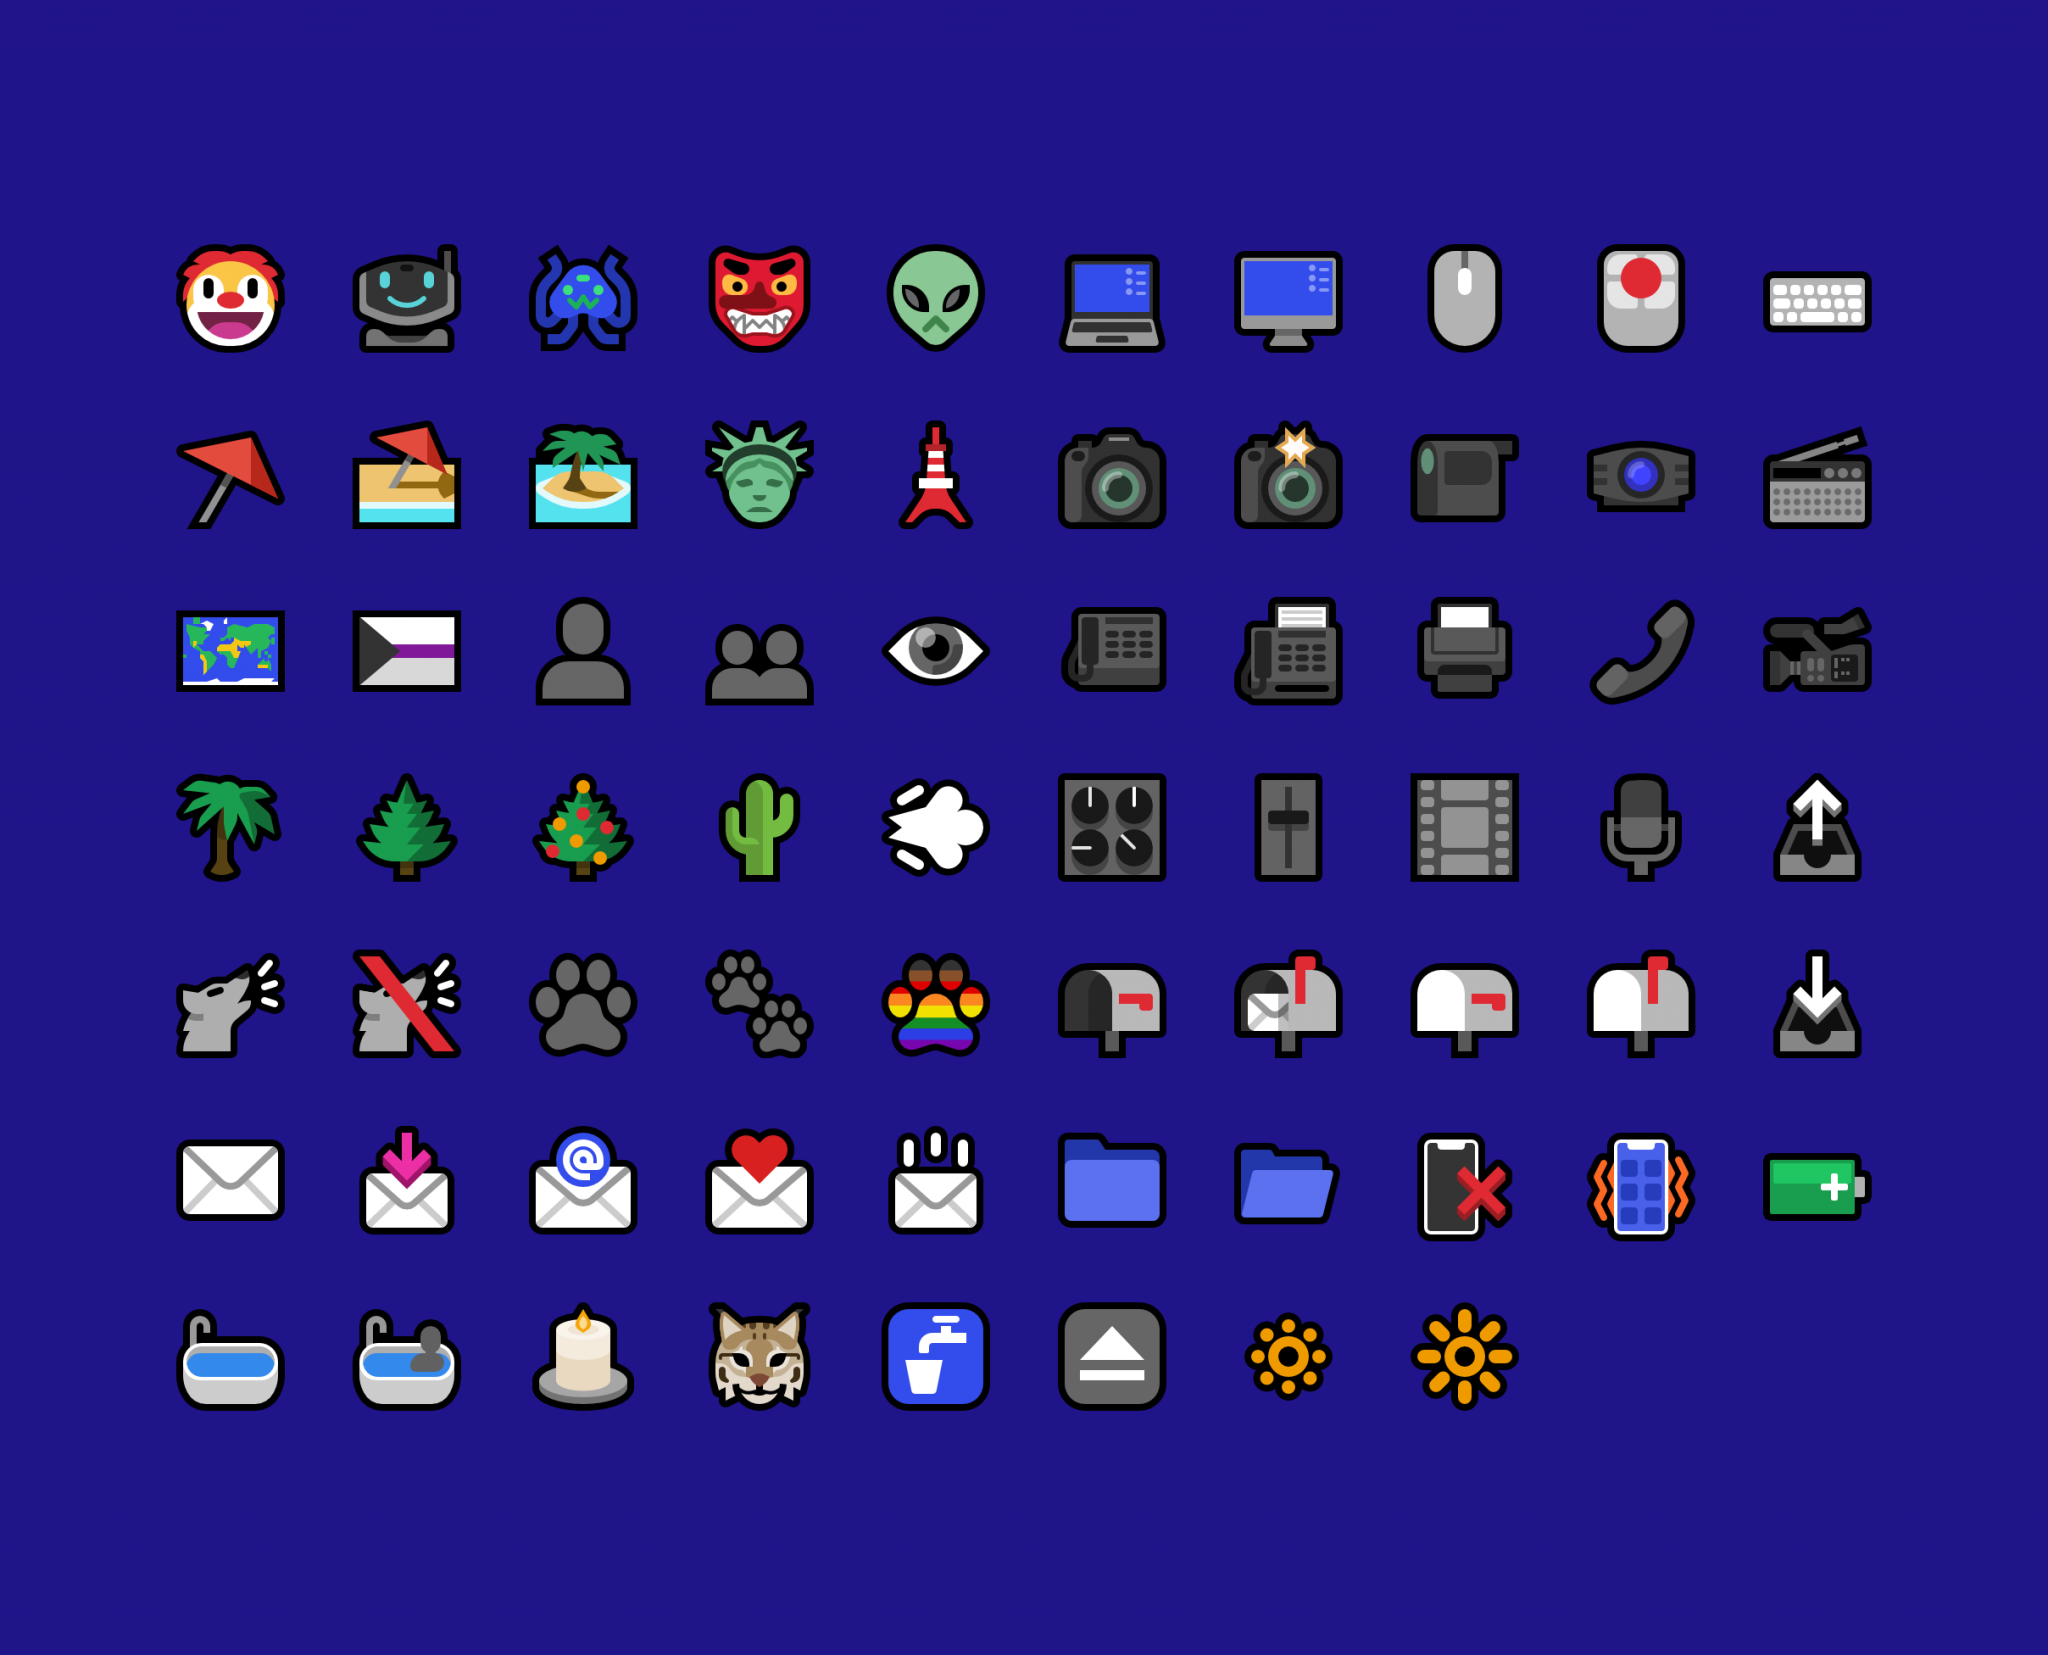 A grid of all of the new emoji in Mutant Standard 0.3.1 on a dark blue background.